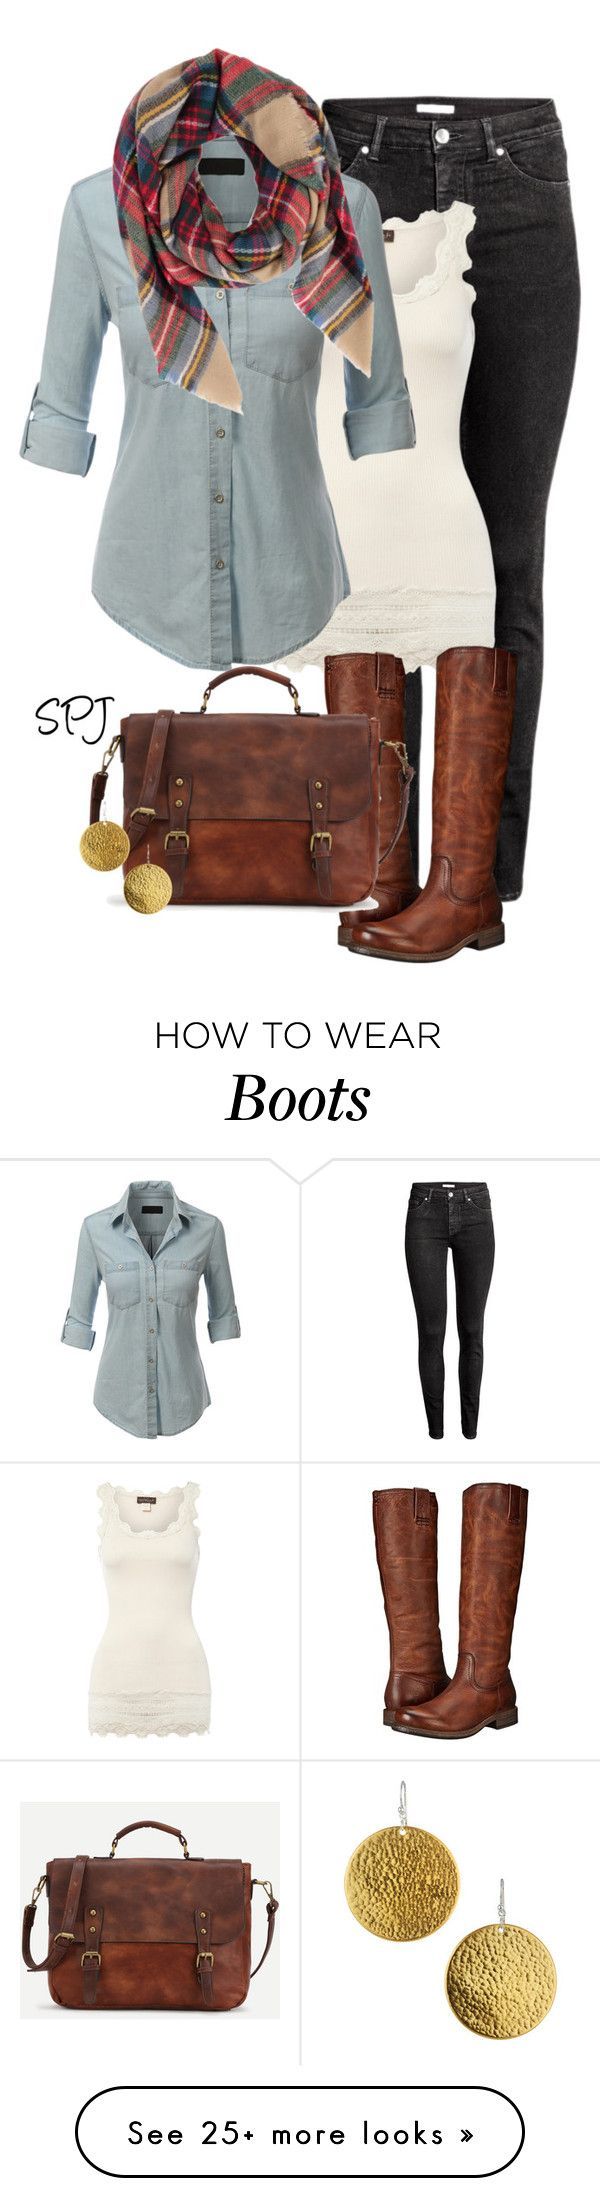 """Riding Boots & Denim"" by s-p-j on Polyvore featuring H&M, Rosemunde, LE3NO, Armitage Avenue, Frye and Gurhan"